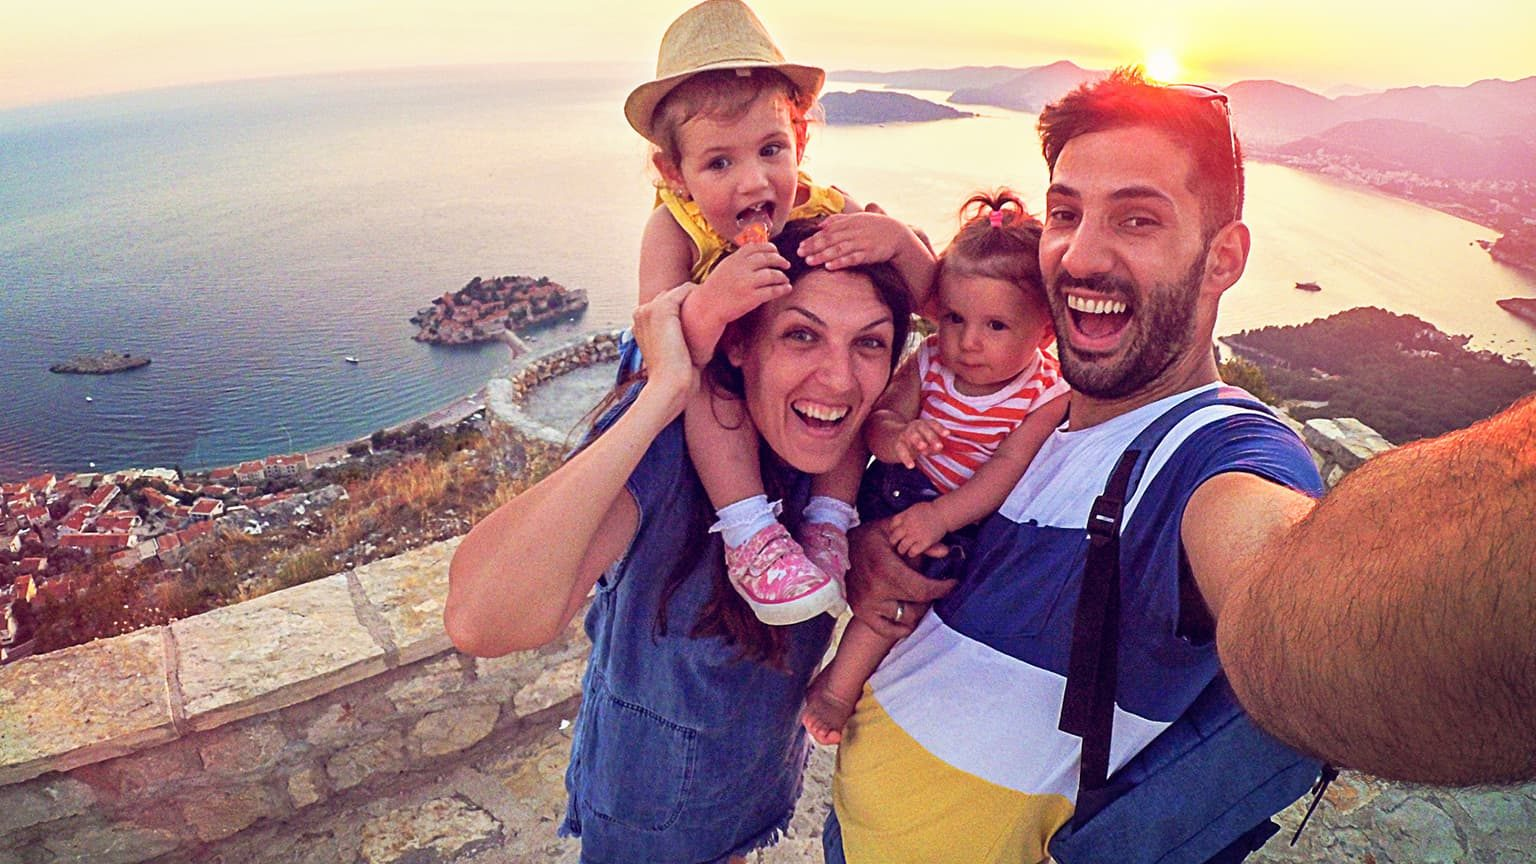 Happy young family taking a selfie on vacation.